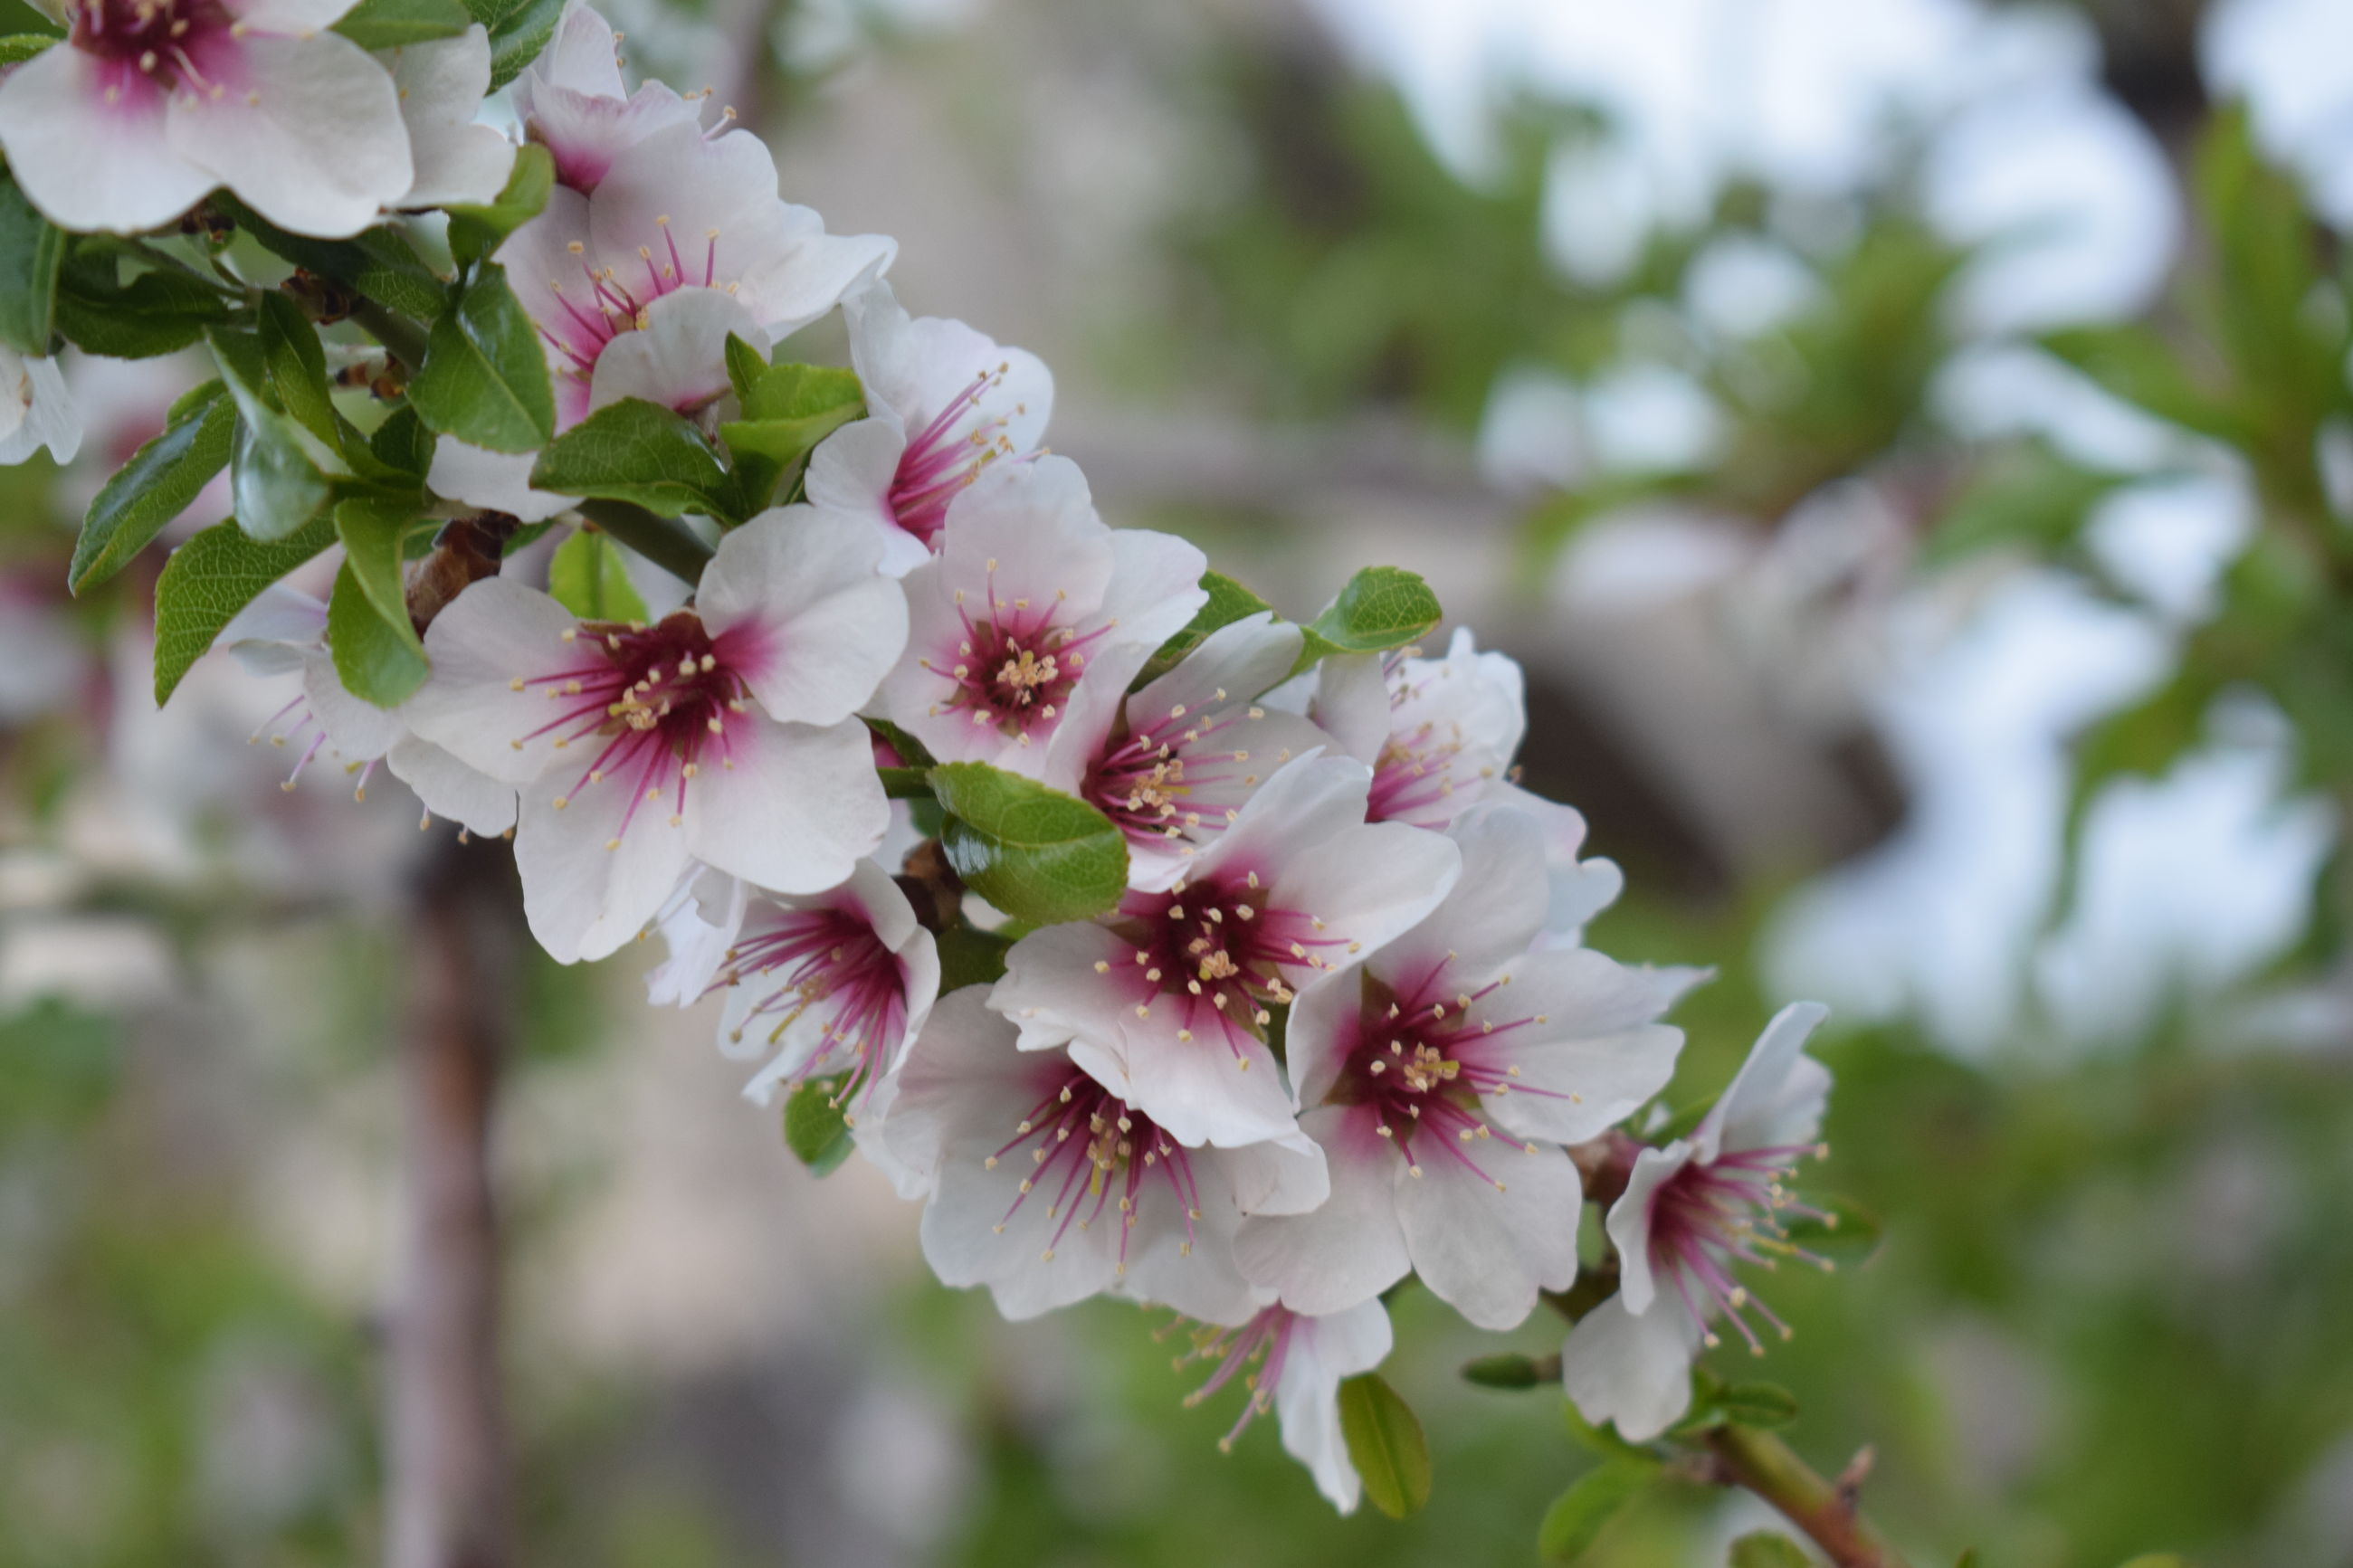 flower, plant, flowering plant, growth, fragility, vulnerability, beauty in nature, freshness, close-up, petal, day, nature, blossom, focus on foreground, tree, inflorescence, white color, no people, flower head, springtime, outdoors, pollen, cherry blossom, cherry tree, spring